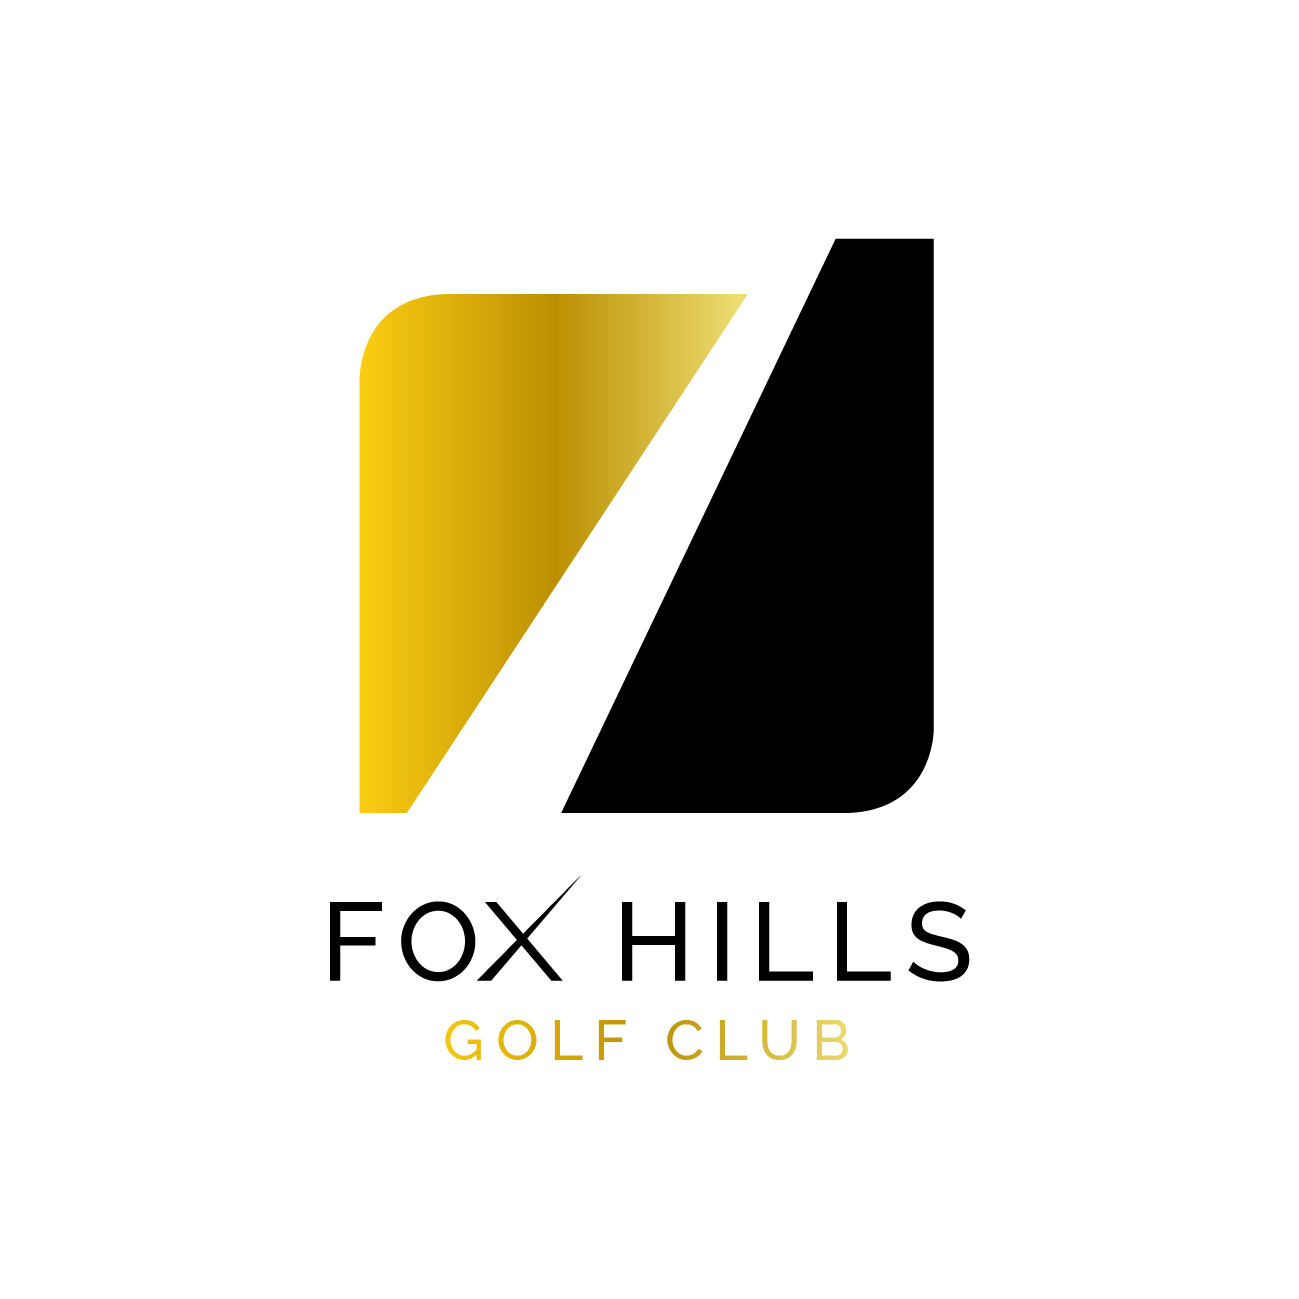 Fox Hills Golf Club